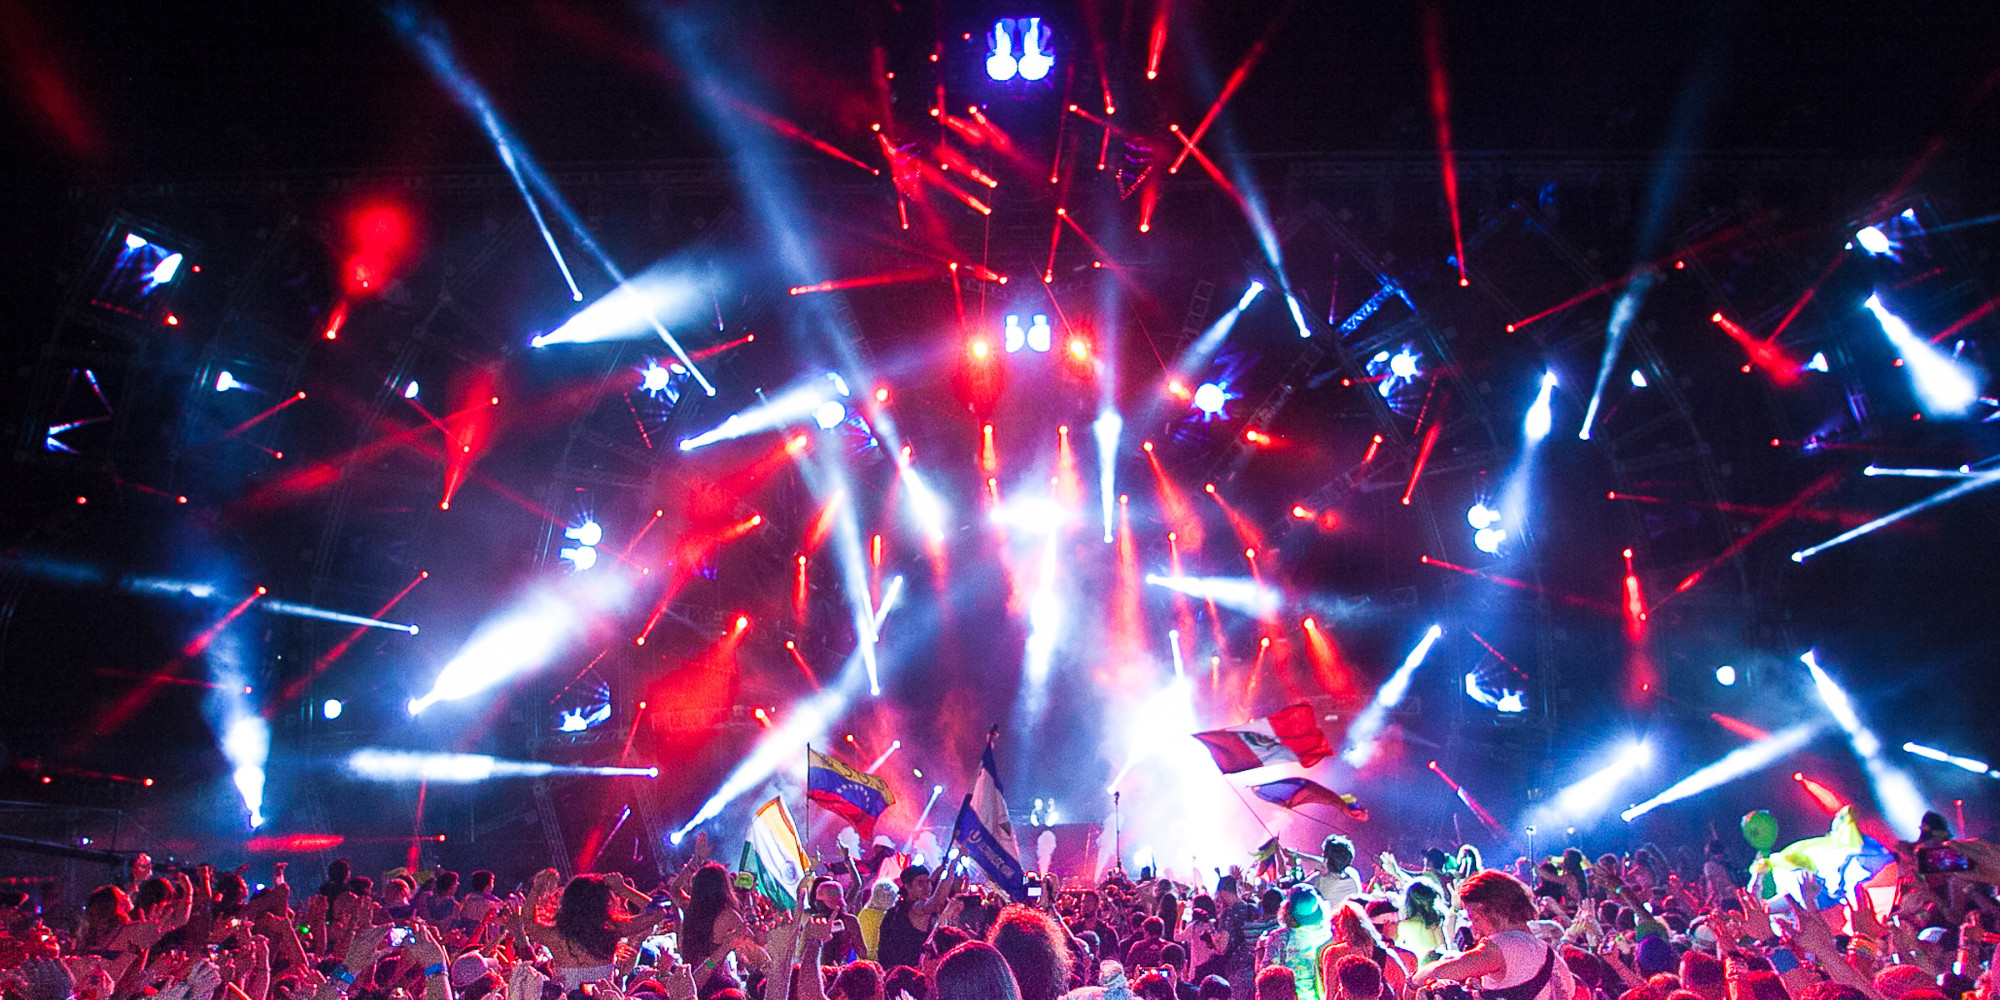 Download Ultra Music Festival Hd Wallpaper Gallery: Music Festival Wallpapers High Quality